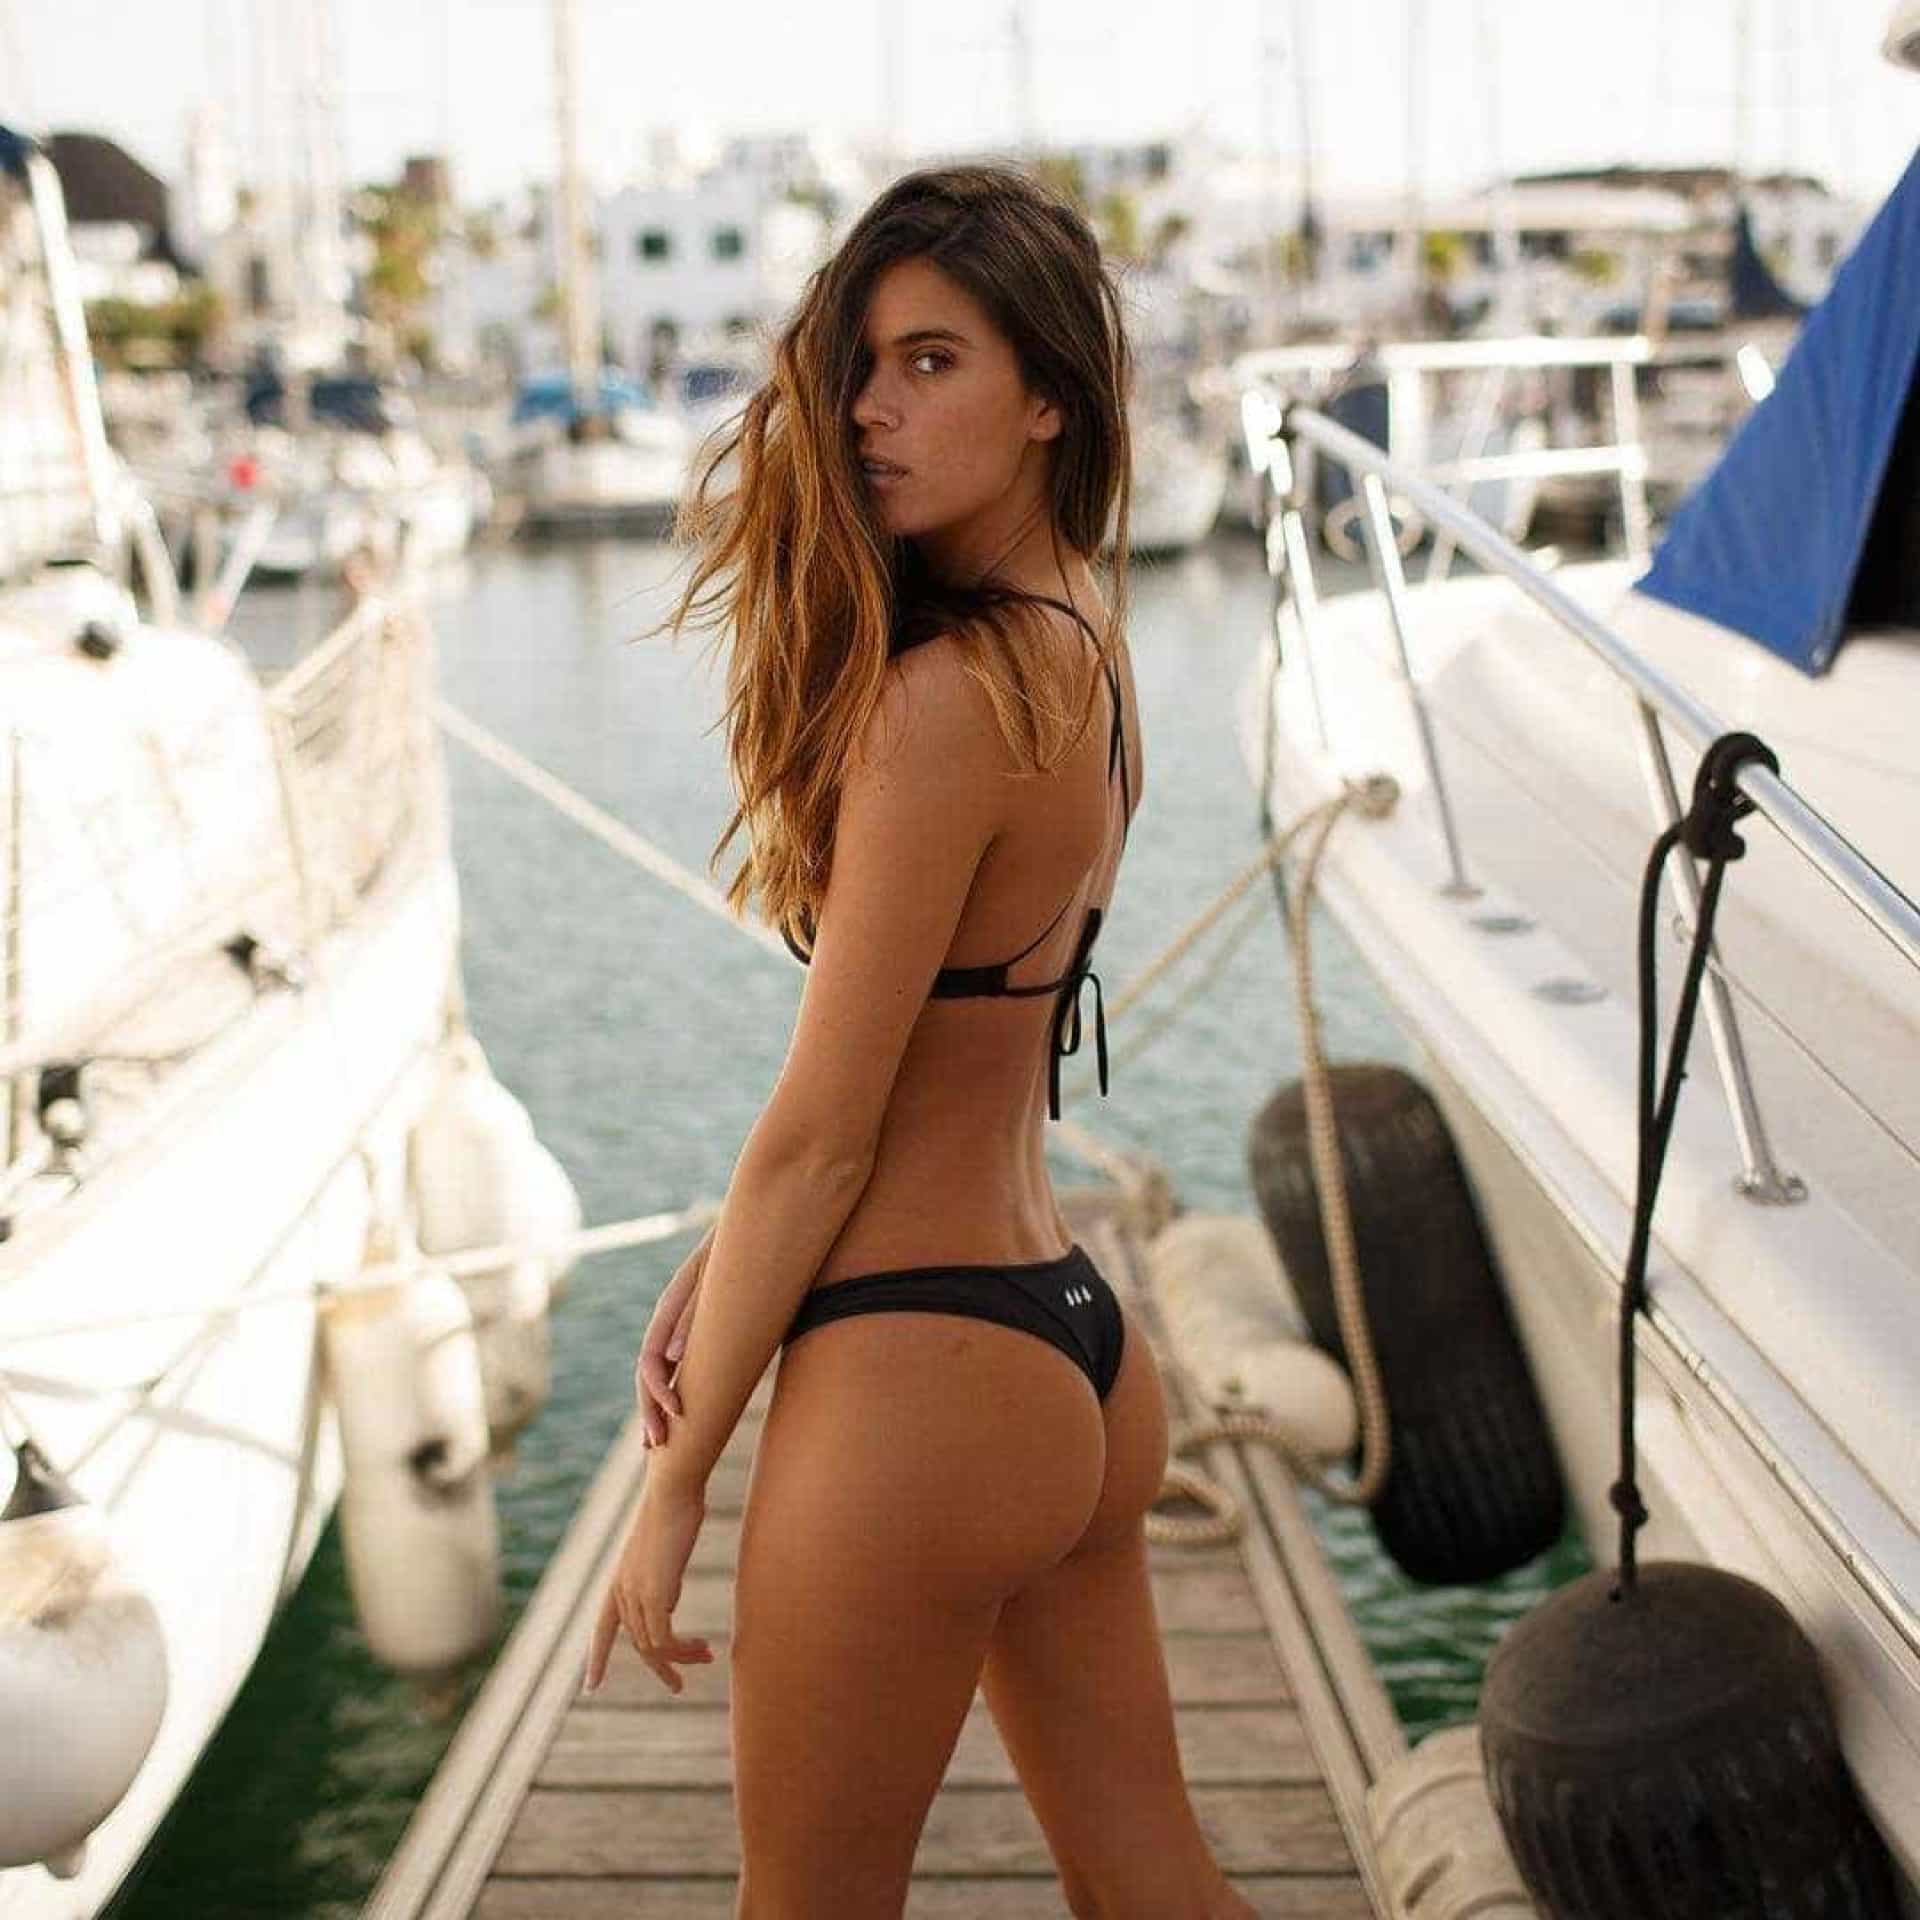 Hacked Marcela Vivan naked (68 photo), Ass, Paparazzi, Boobs, cameltoe 2015